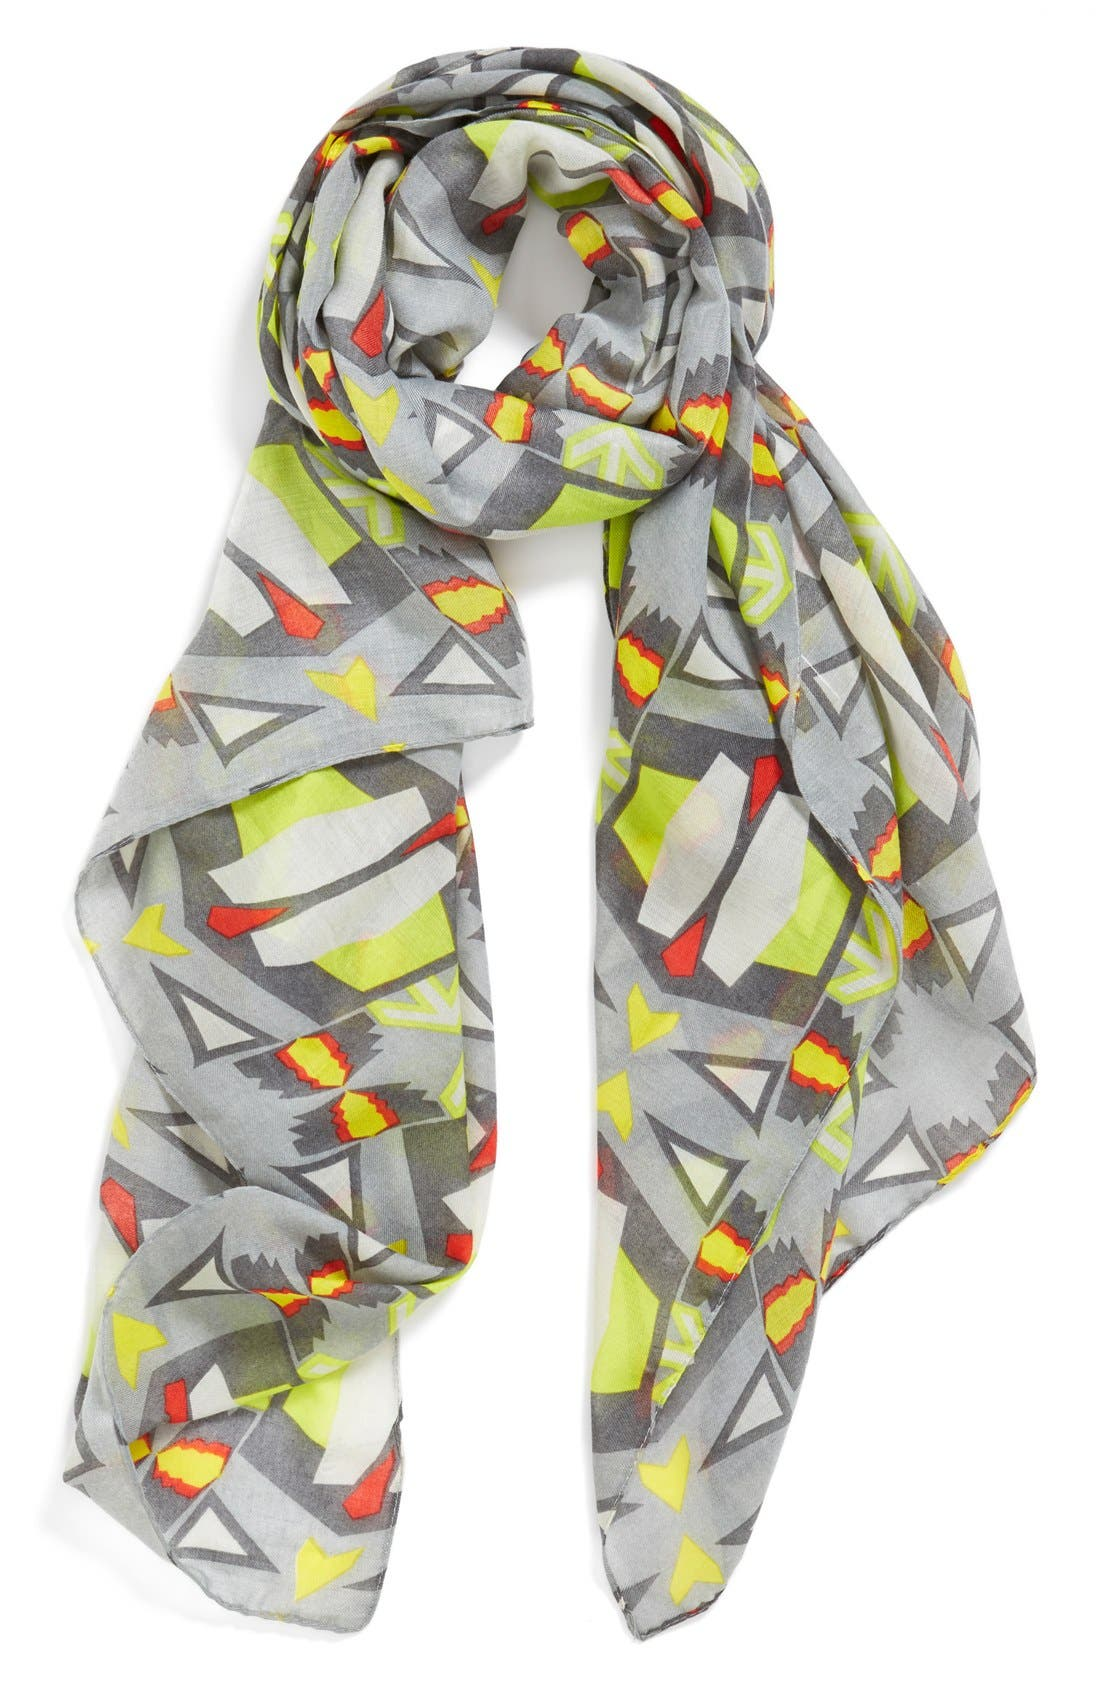 Alternate Image 1 Selected - Leith 'African Geo' Oversized Oblong Scarf